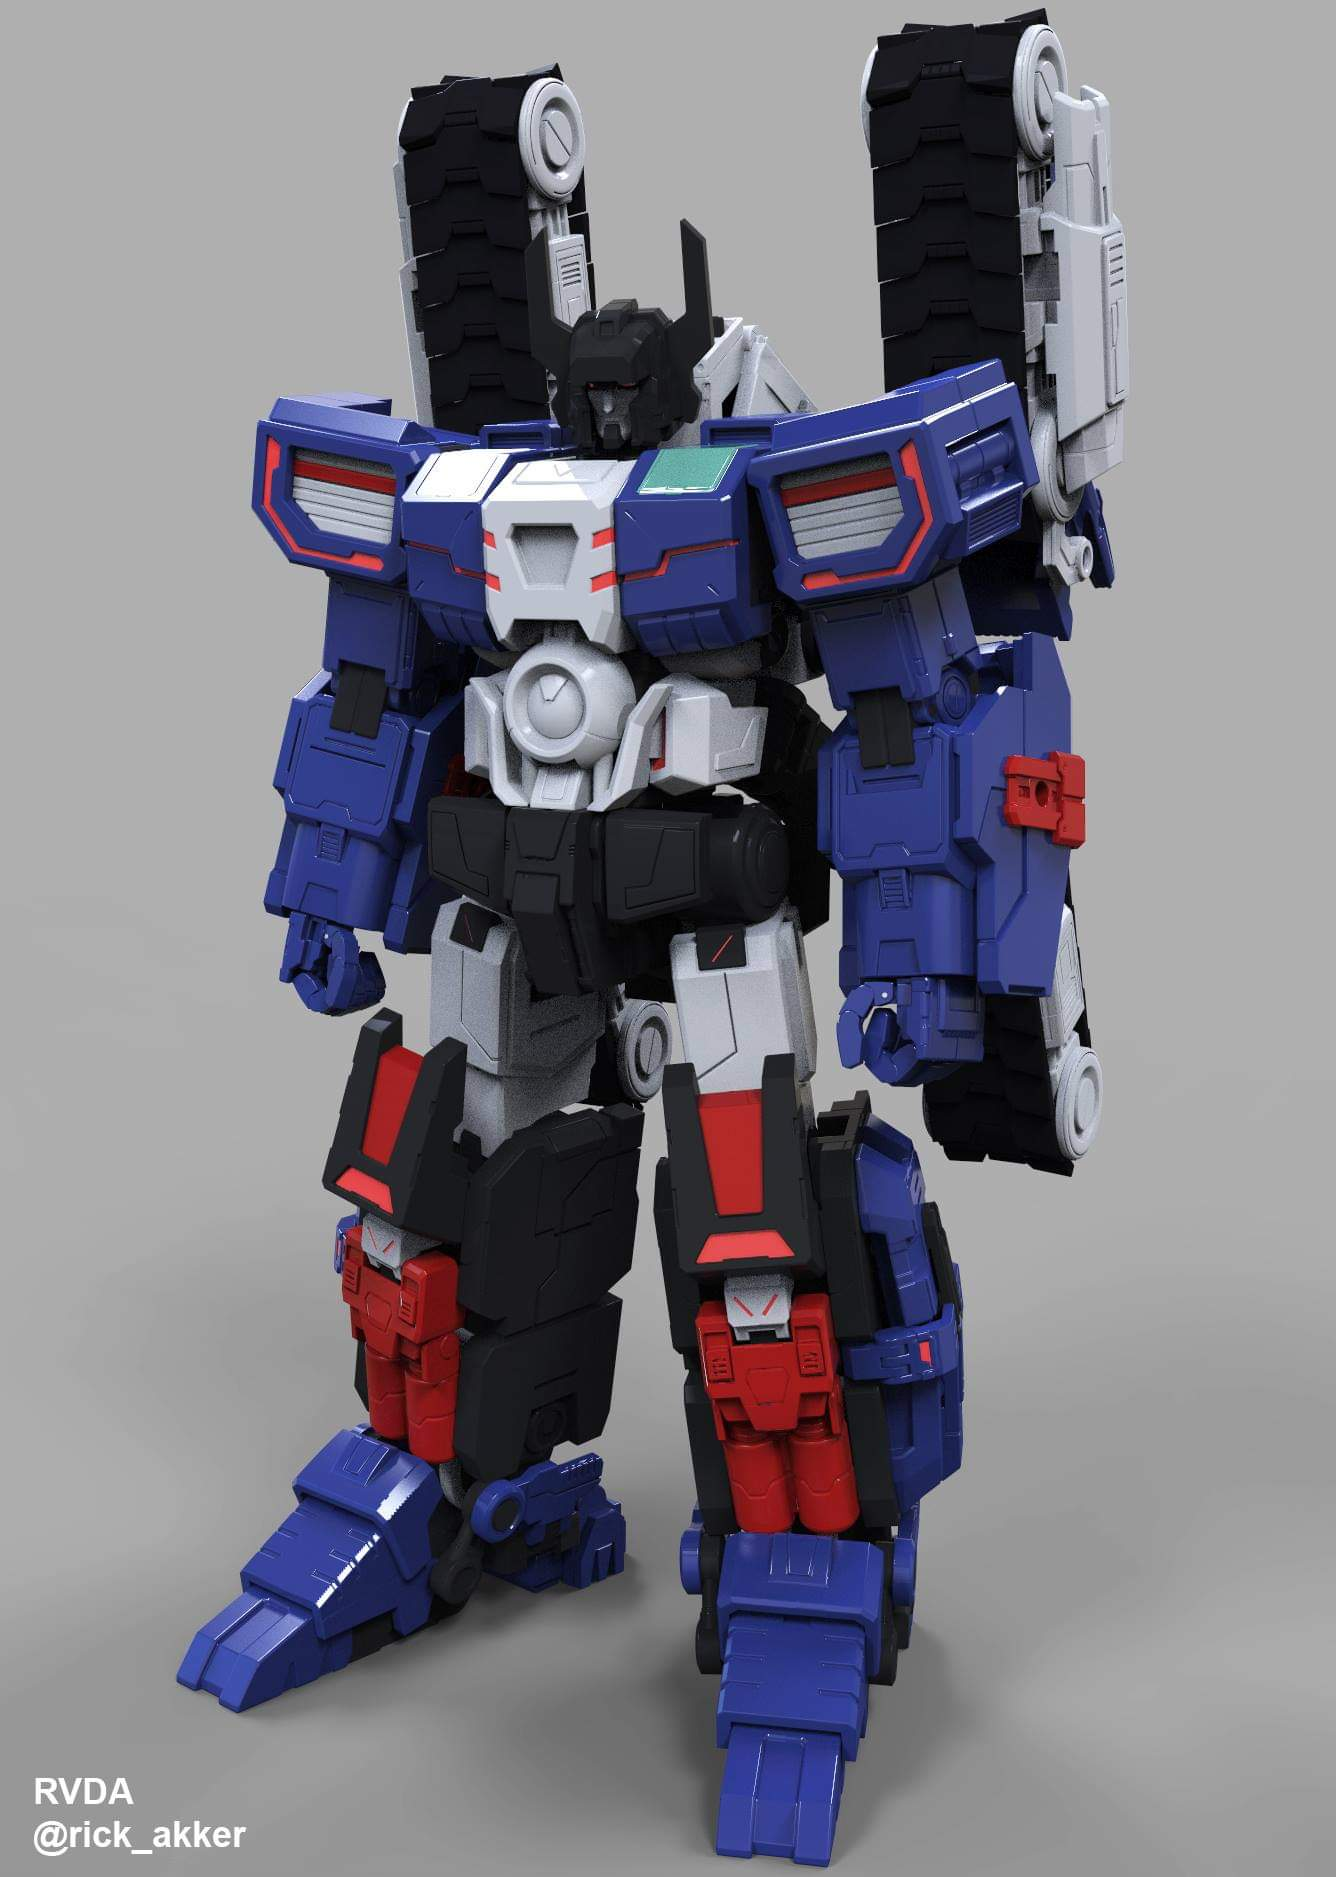 [Mastermind Creations] Produit Tiers - Reformatted R-50 Supermax - aka Fortress/Forteresse Maximus des BD IDW GN16VMwx_o